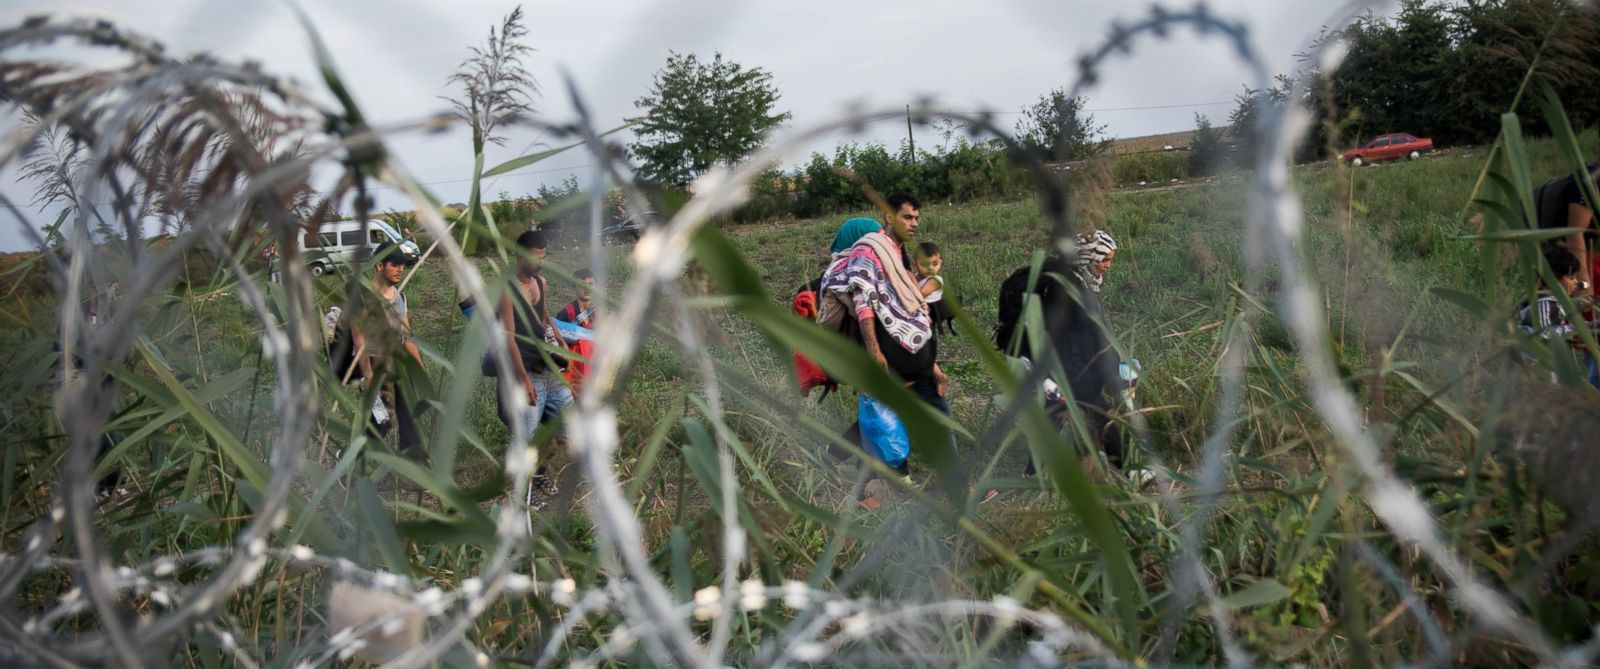 PHOTO: Refugees walk along a barbed wire barrier a the border of Hungary and Serbia, near Roszke, Hungary, Sept. 14, 2015.